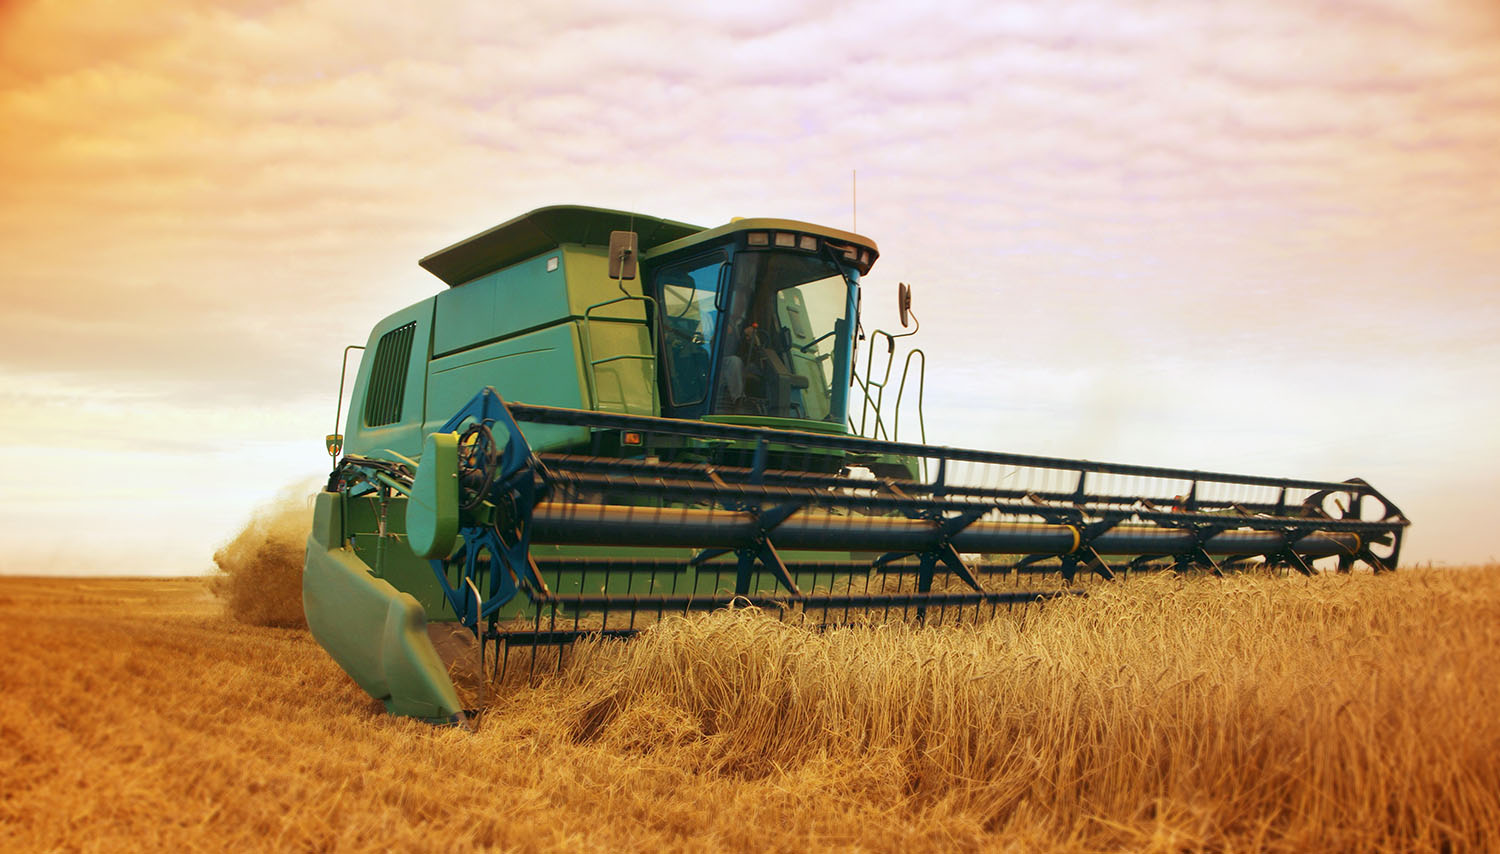 10 Safety Tips To Remember About Farm Equipment And Their Uses